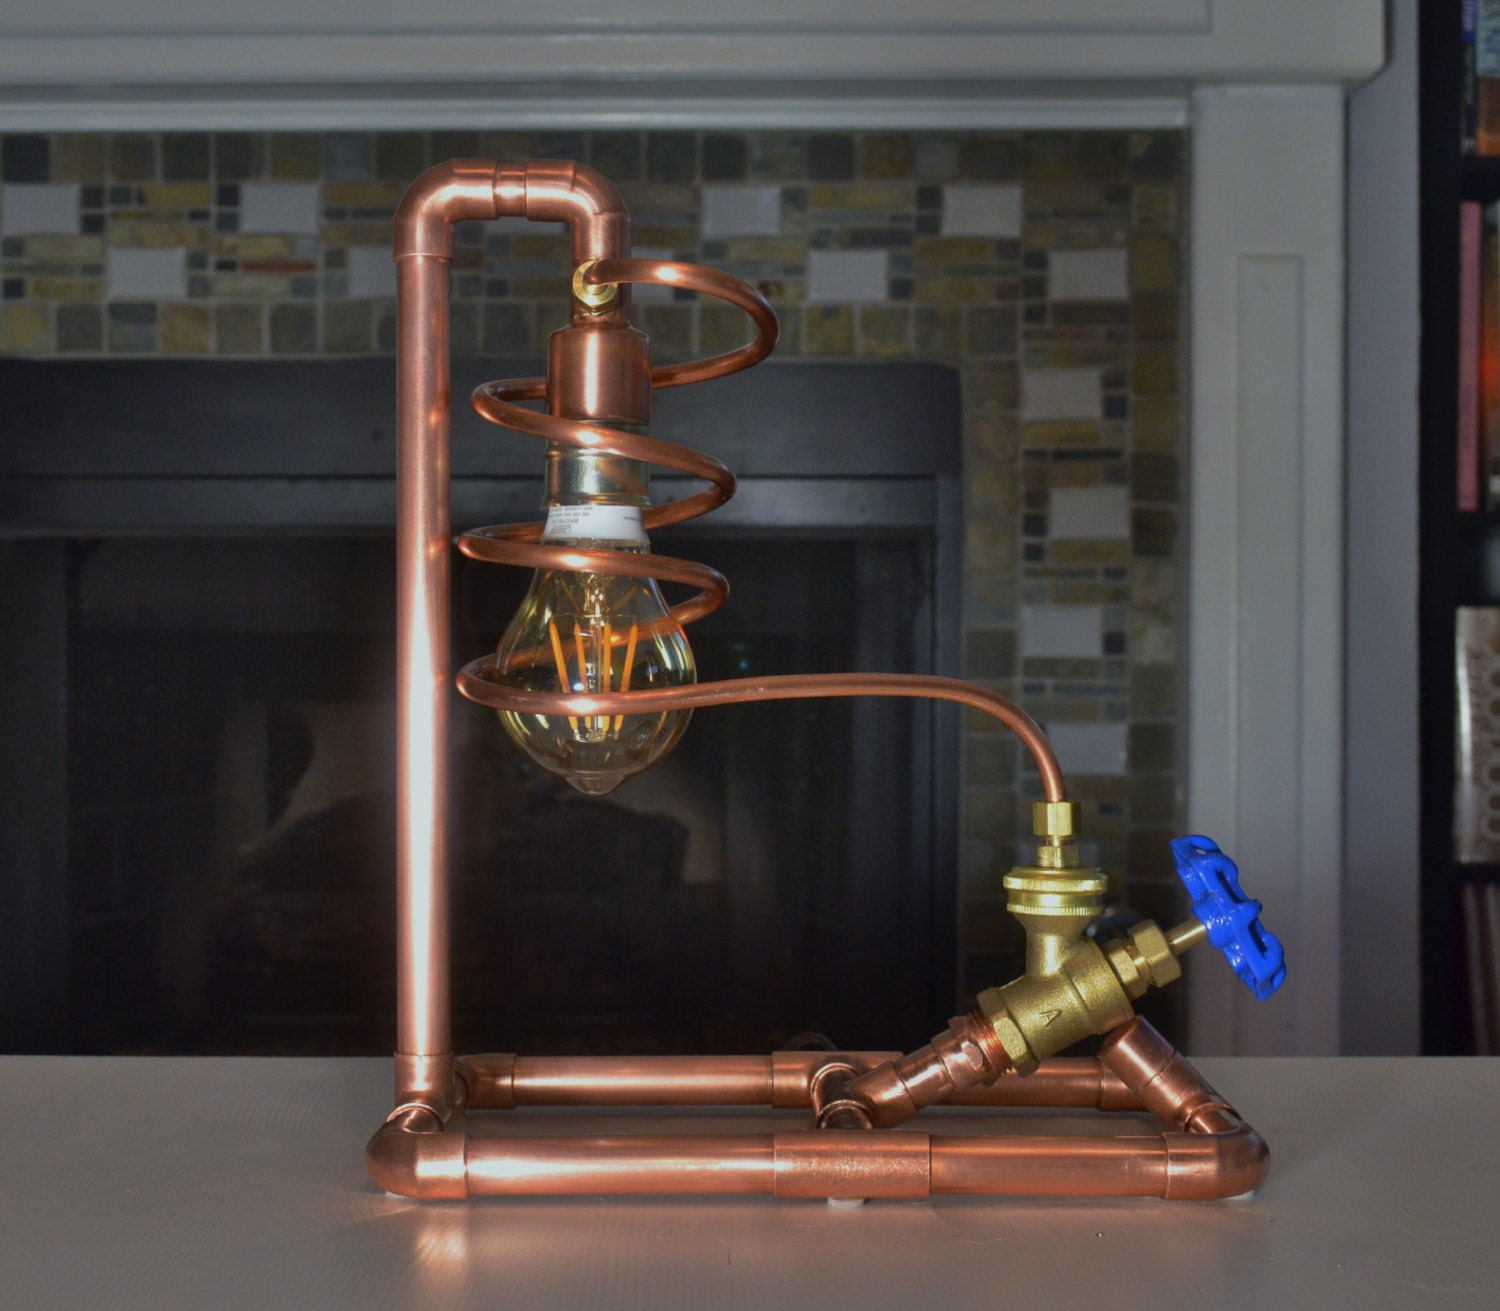 Copper Pipe Lamp With Valve Switch Table Lamp Steampunk